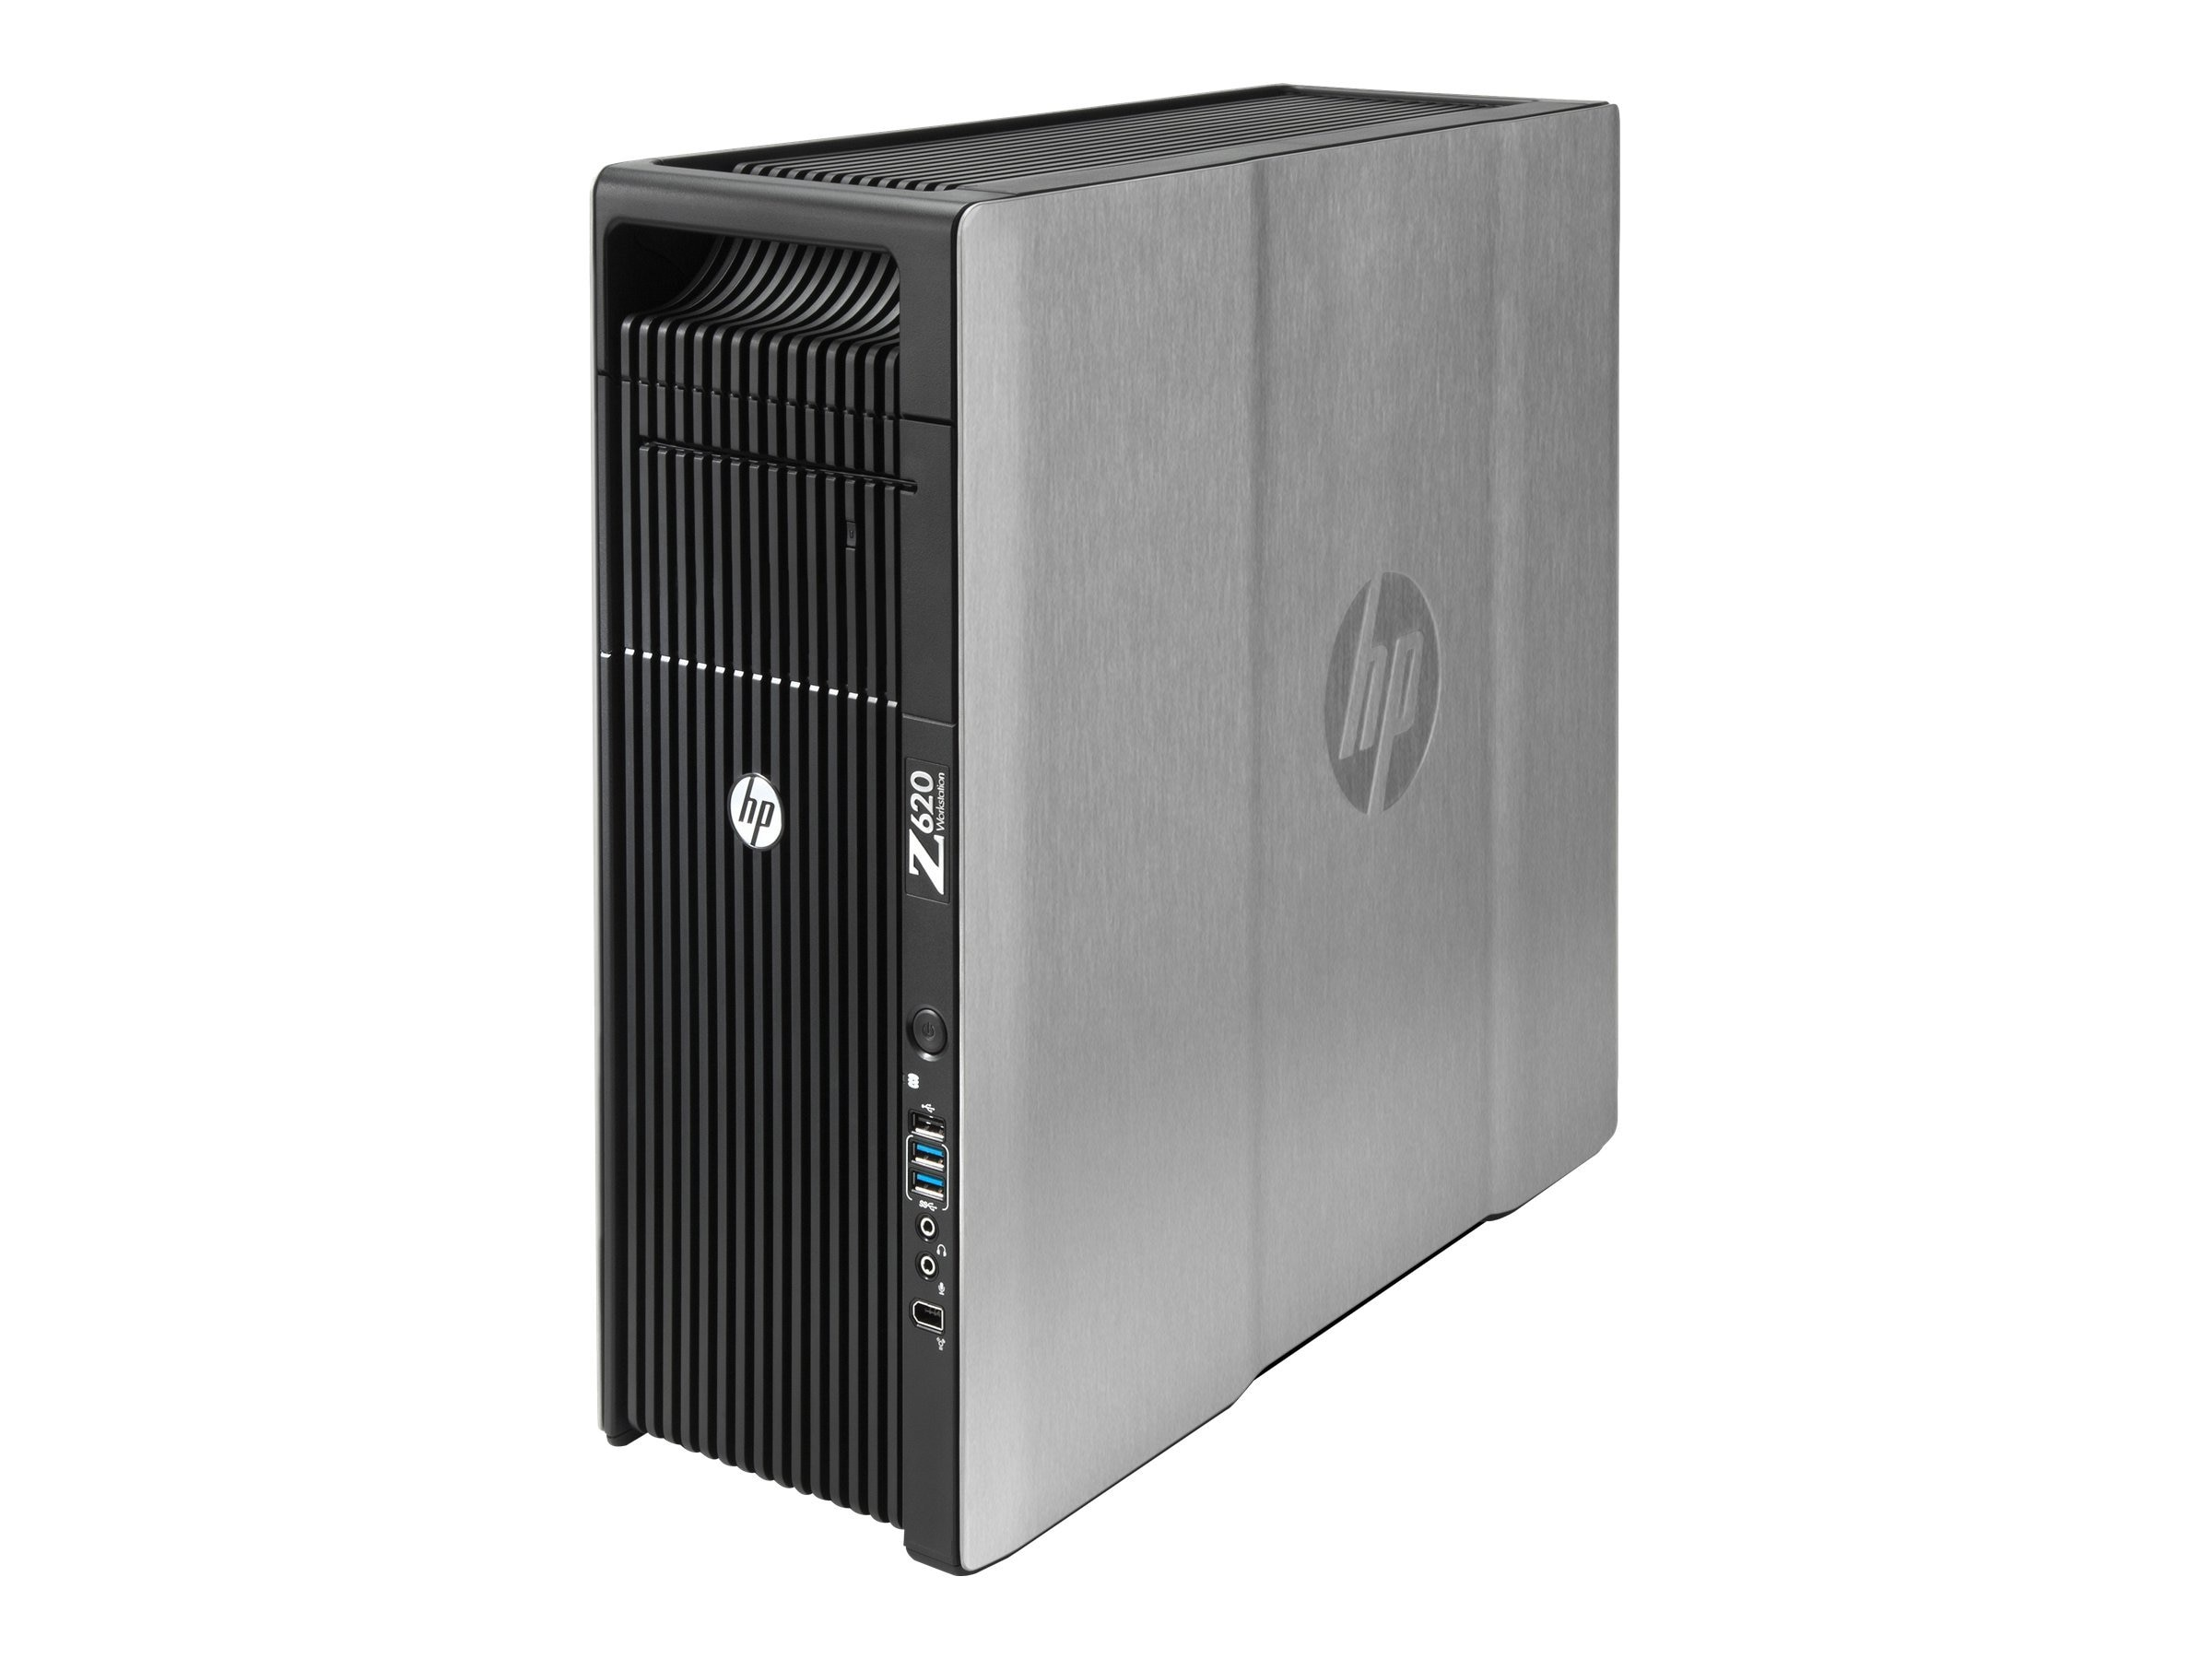 HP Z620 RMT Xeon E5-2630 v2 2.6GHz 64GB 1TB DVD-RW W7P64, G7N04UP#ABA, 17865158, Workstations